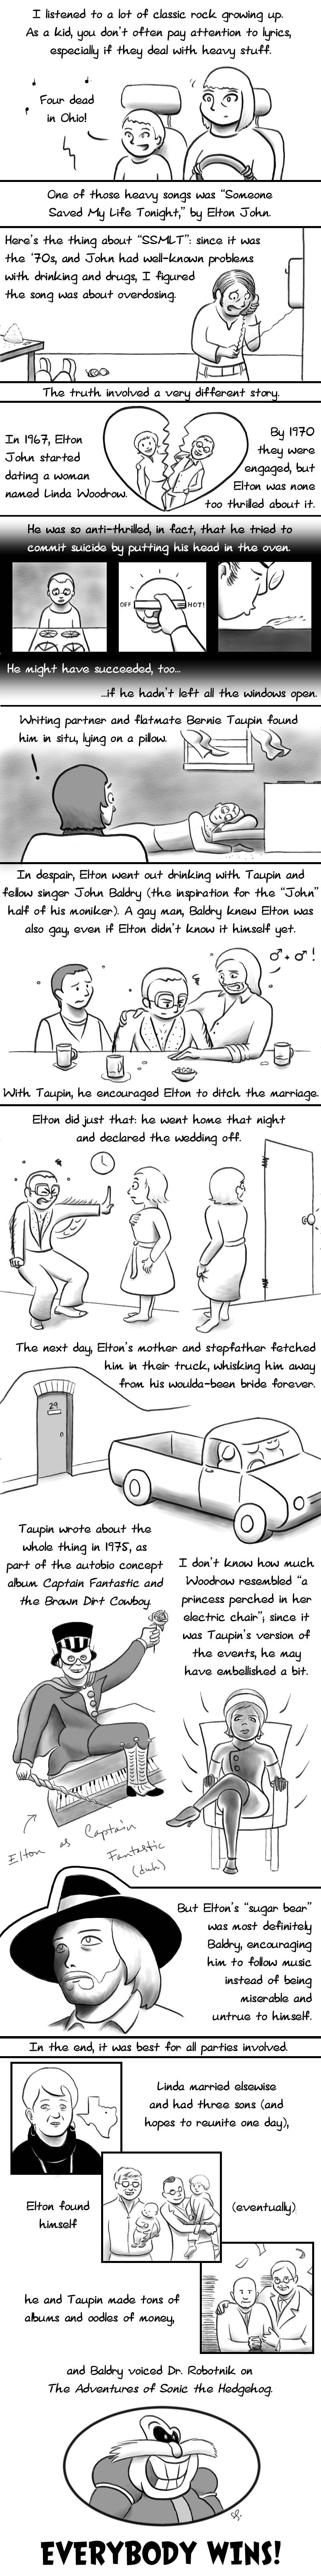 after all this, Elton was married to a woman for about three years. go fig.